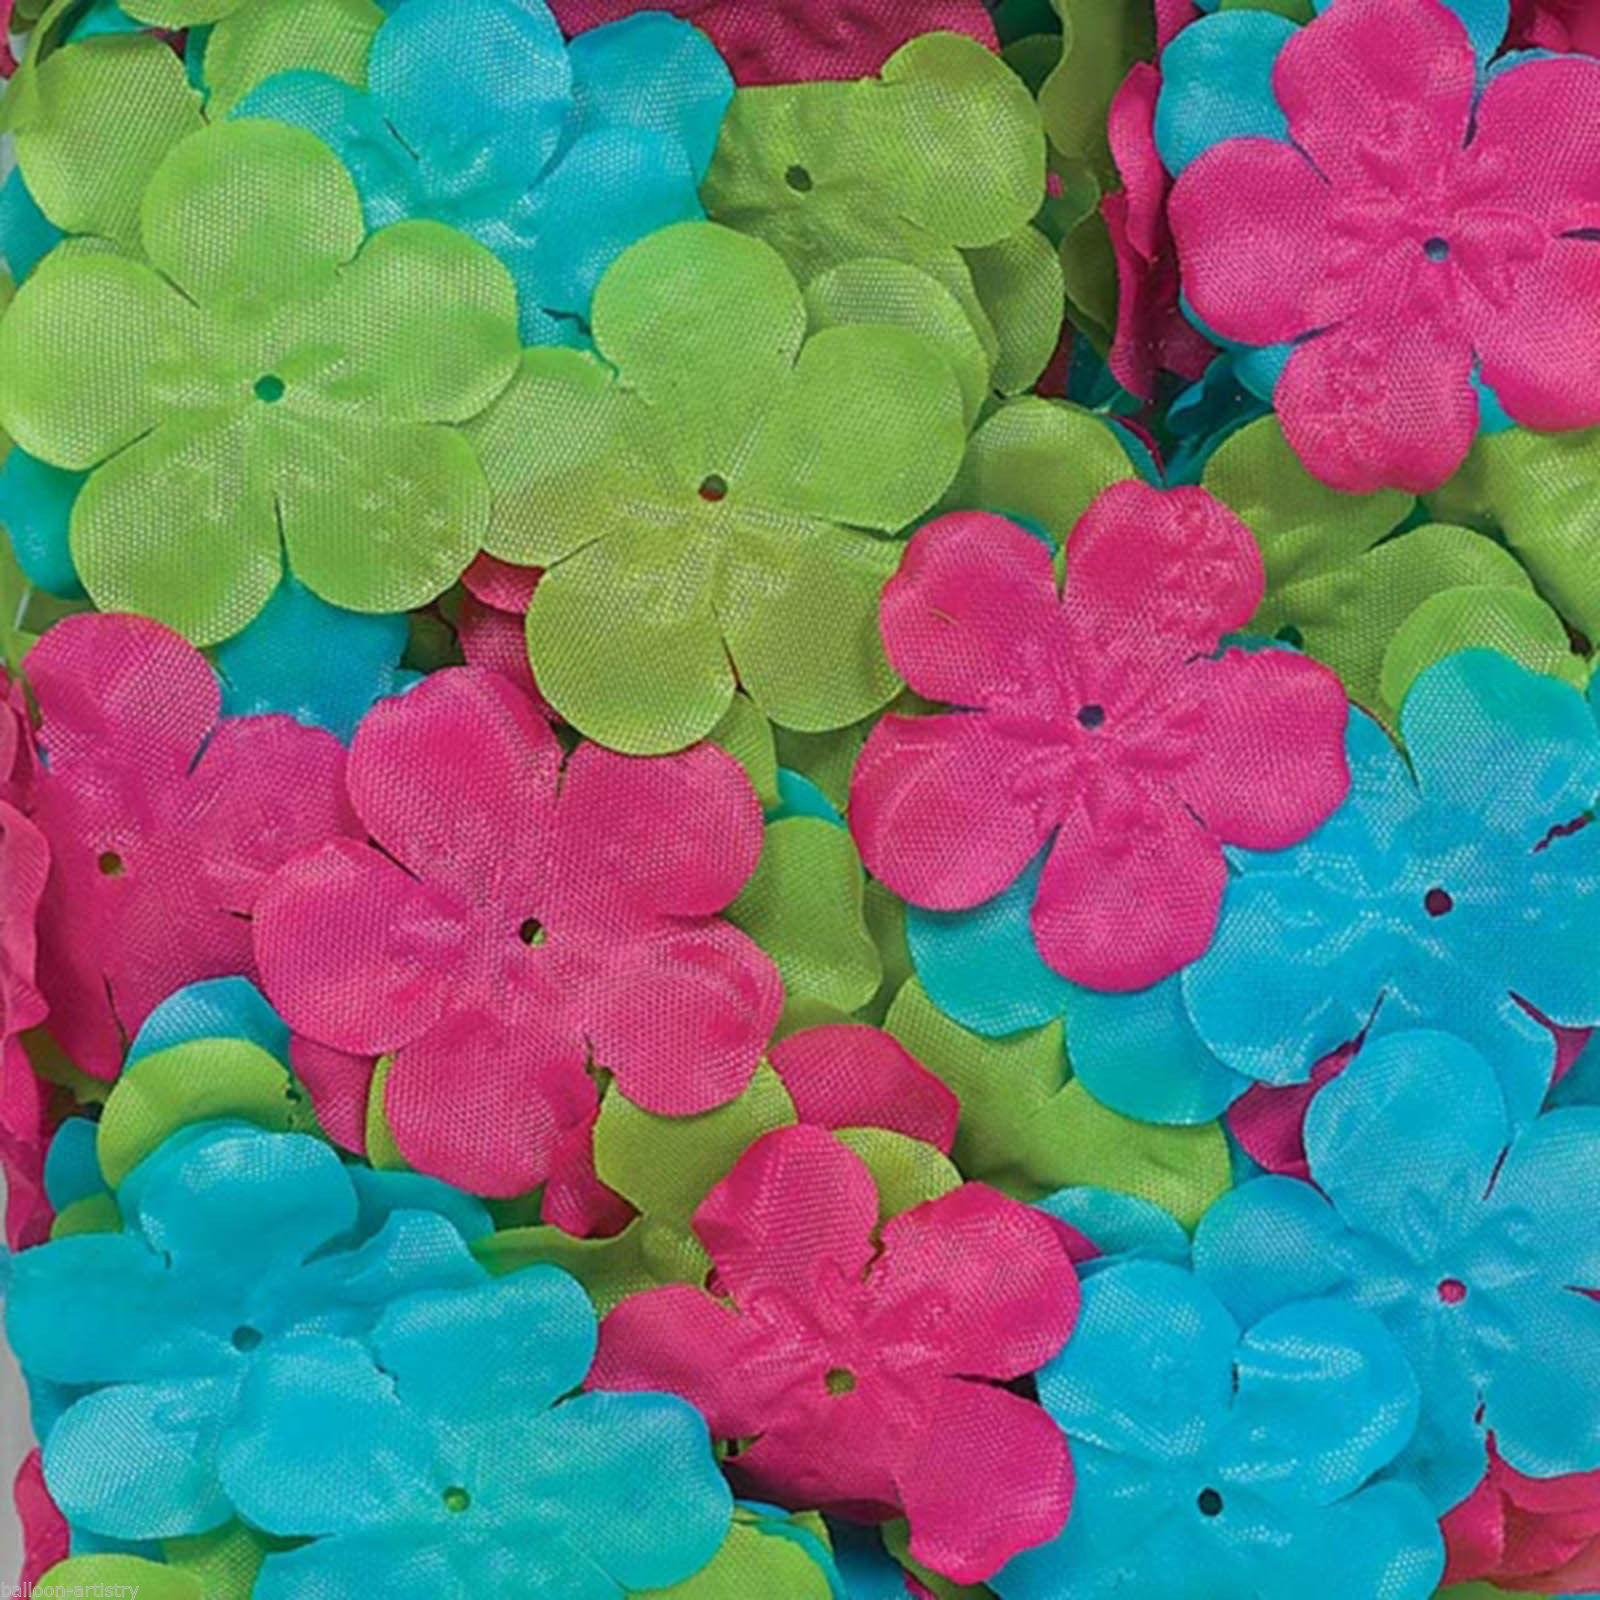 300 Tropical Luau Party Summer Fabric Hibiscus Flower